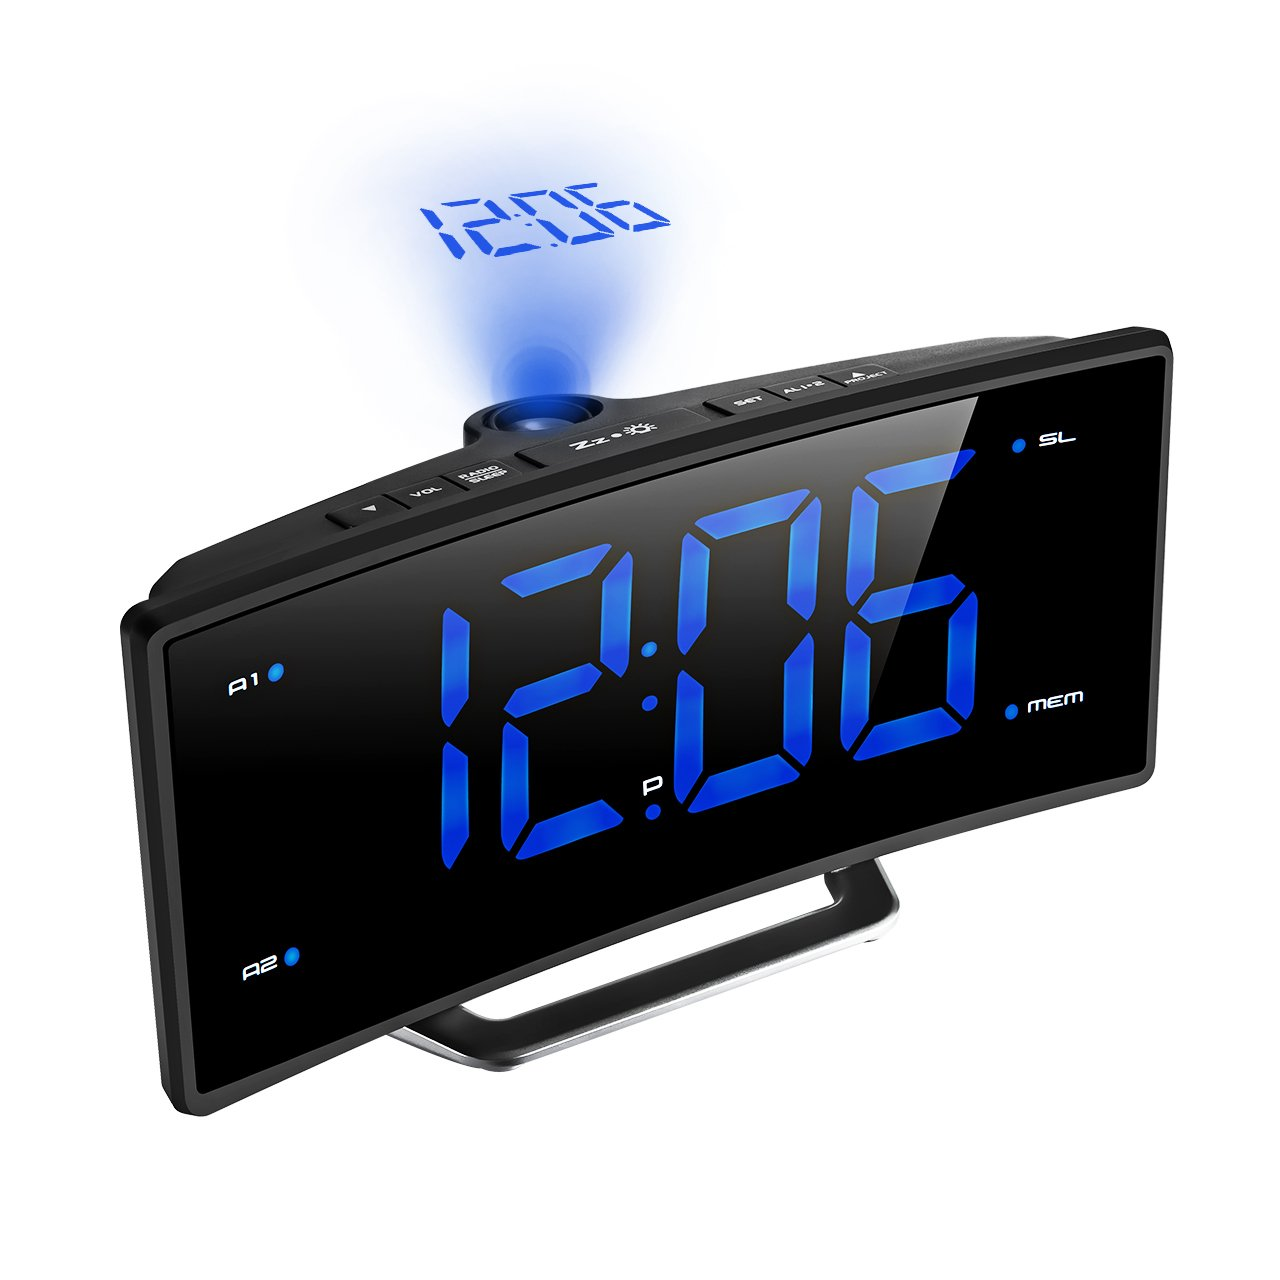 Digital Projection Clock, TopElek FM Radio Alarm Clock with USB Charging Port, Dual Alarms, Snooze Function, 2-inch Large LED Display with Dimmer, Sleep Timer